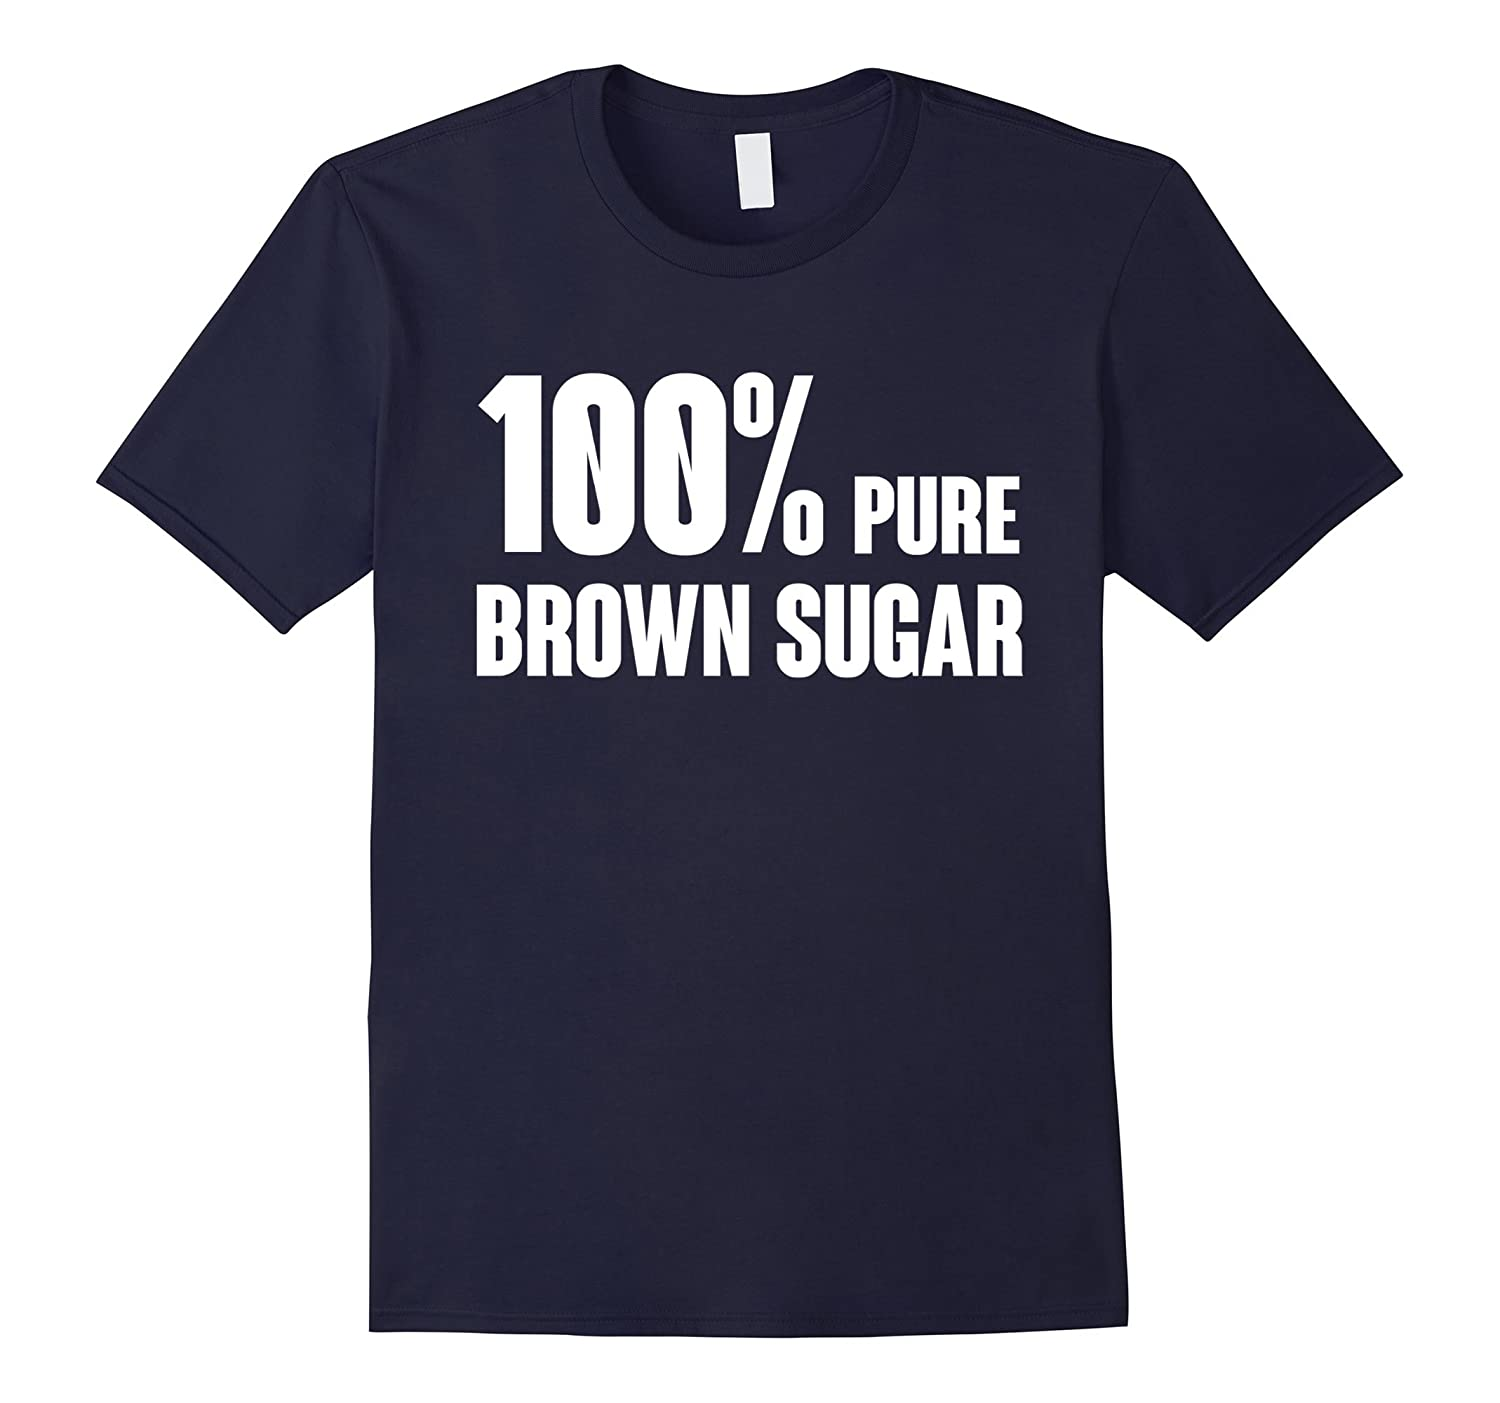 100% pure brown sugar T shirt - Best gift for Men Women-azvn